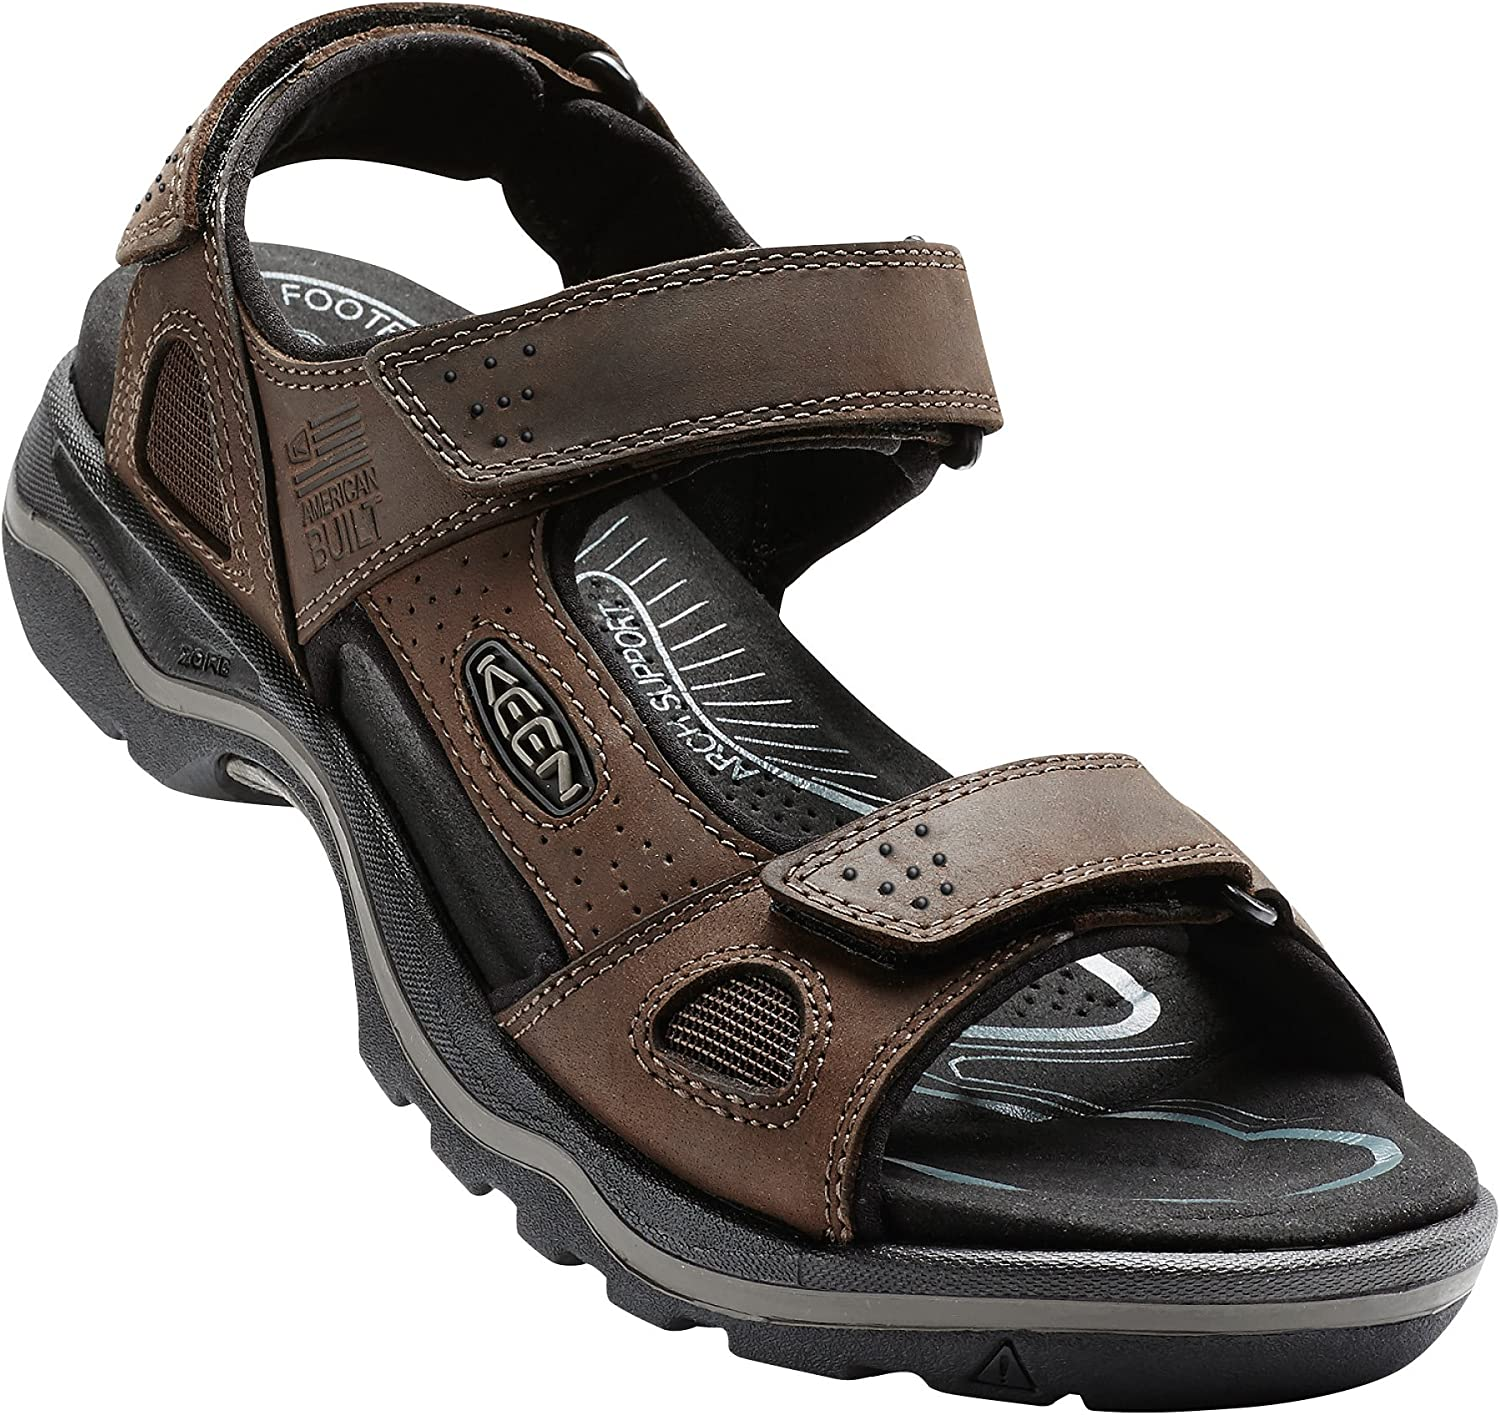 KEEN - Men's Rialto 3 Point Sandal for the Outdoors